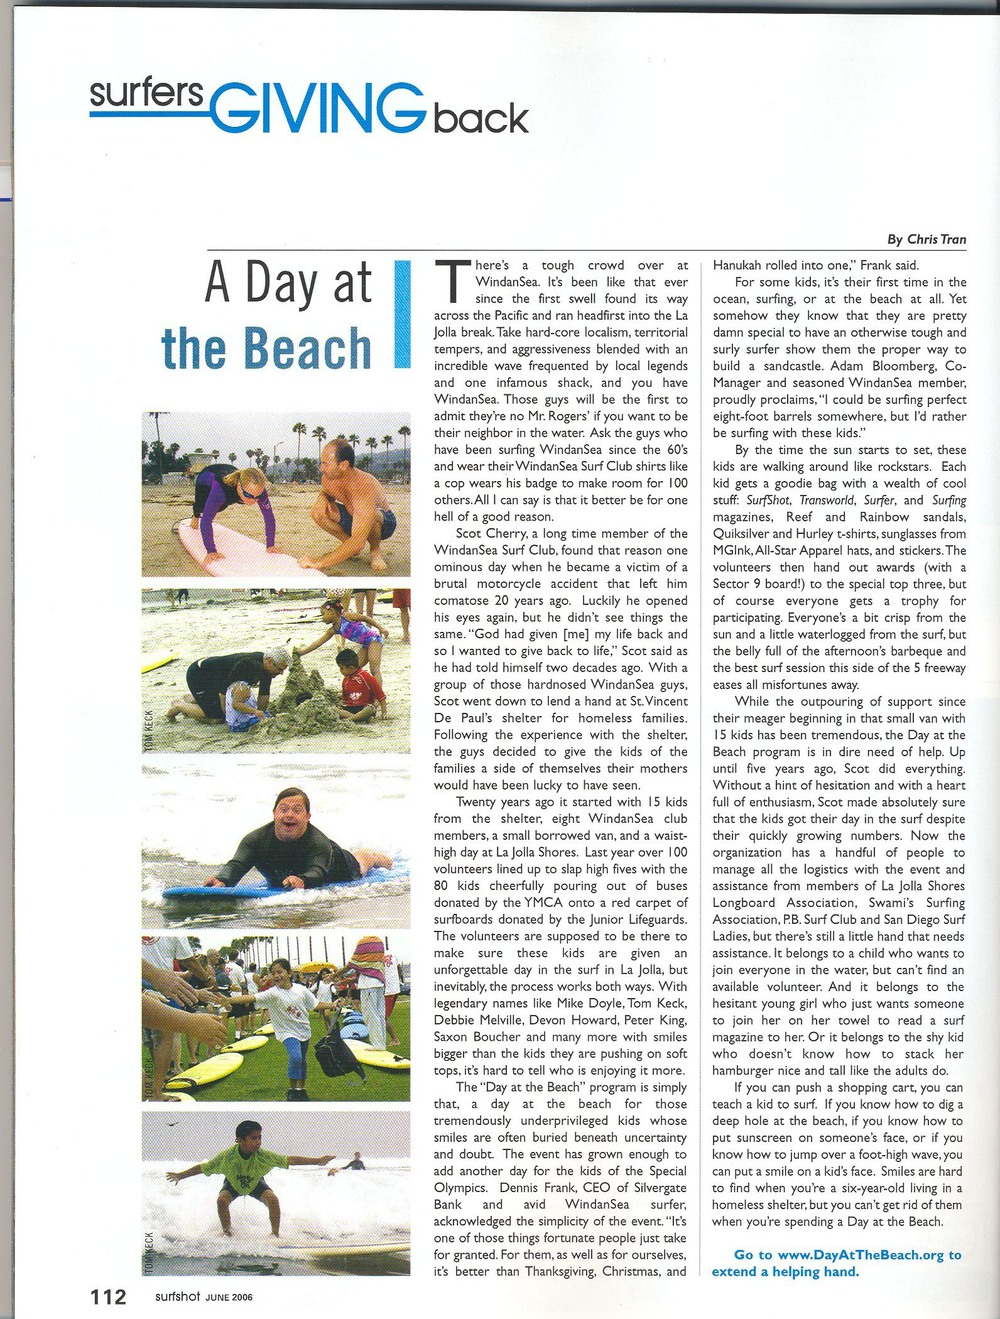 SurfShot Magazine / San Diego based surf magazine article